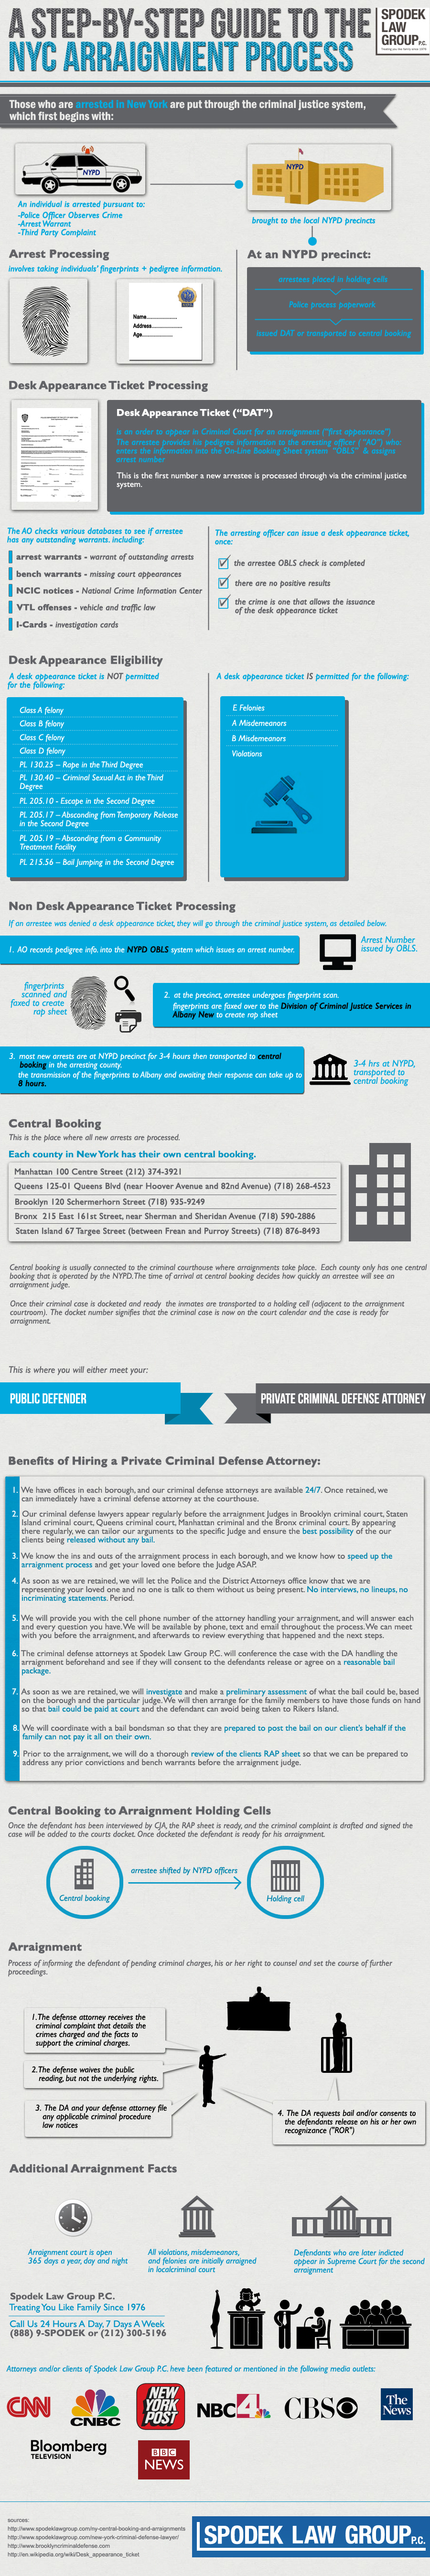 A Guide to NYC Criminal Justice System